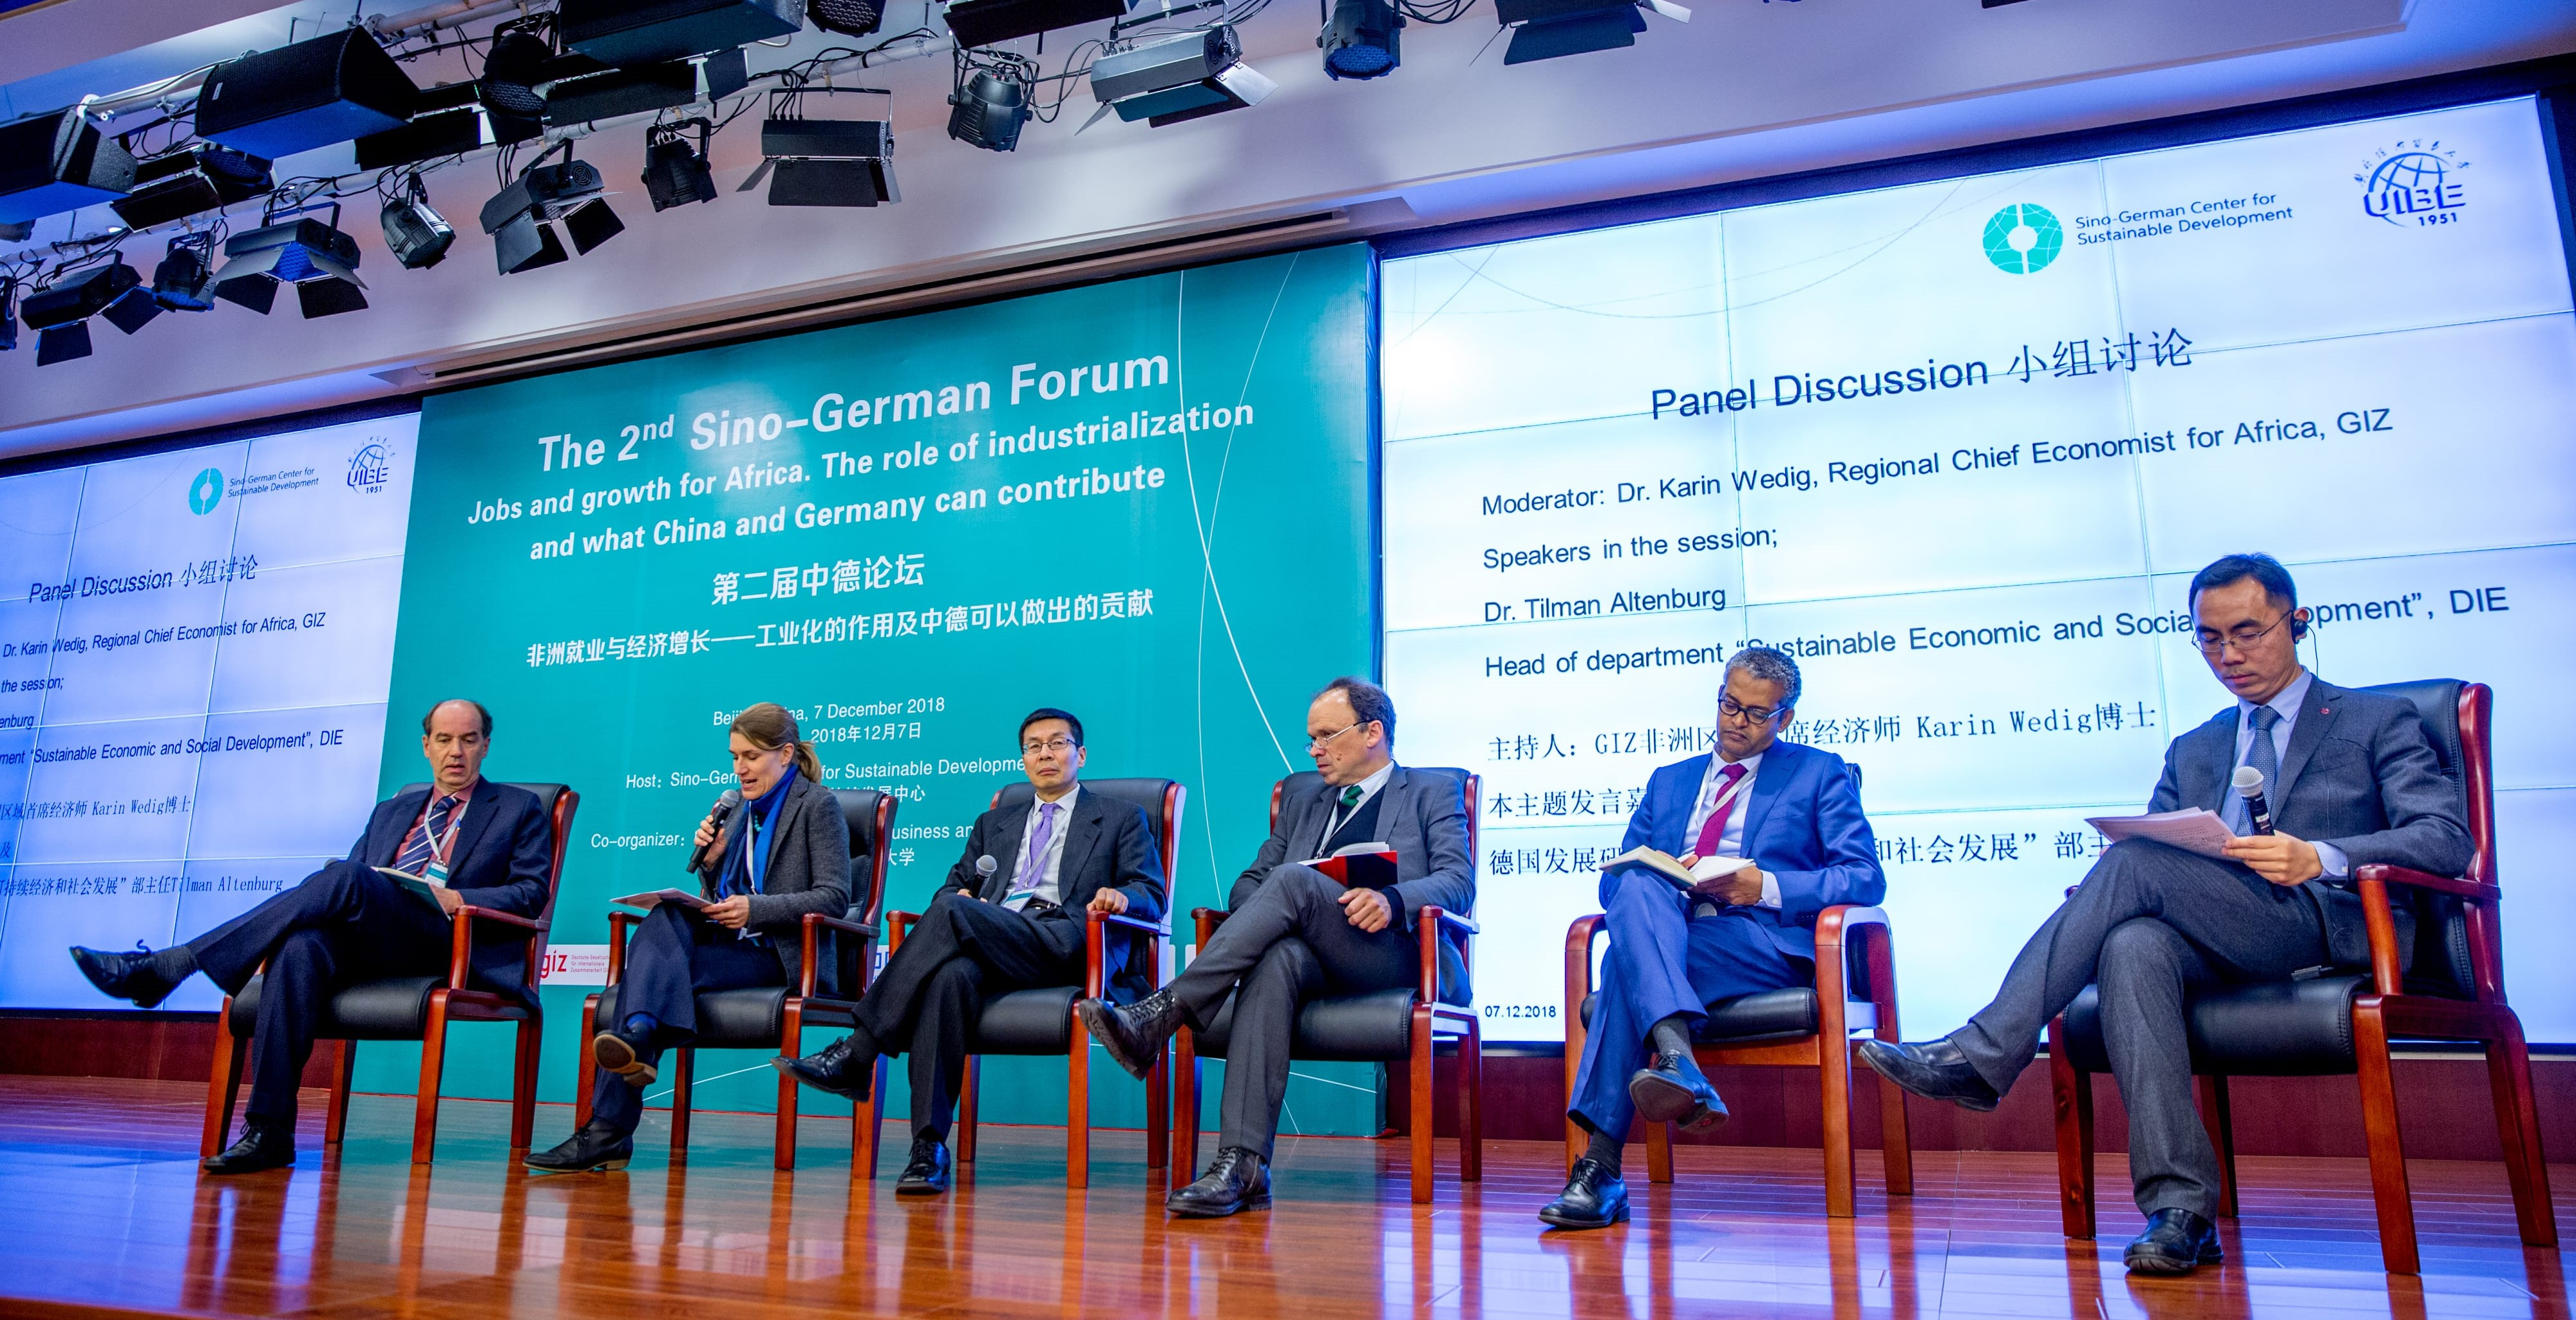 2nd Sino-German Forum on Jobs and Growth for Africa